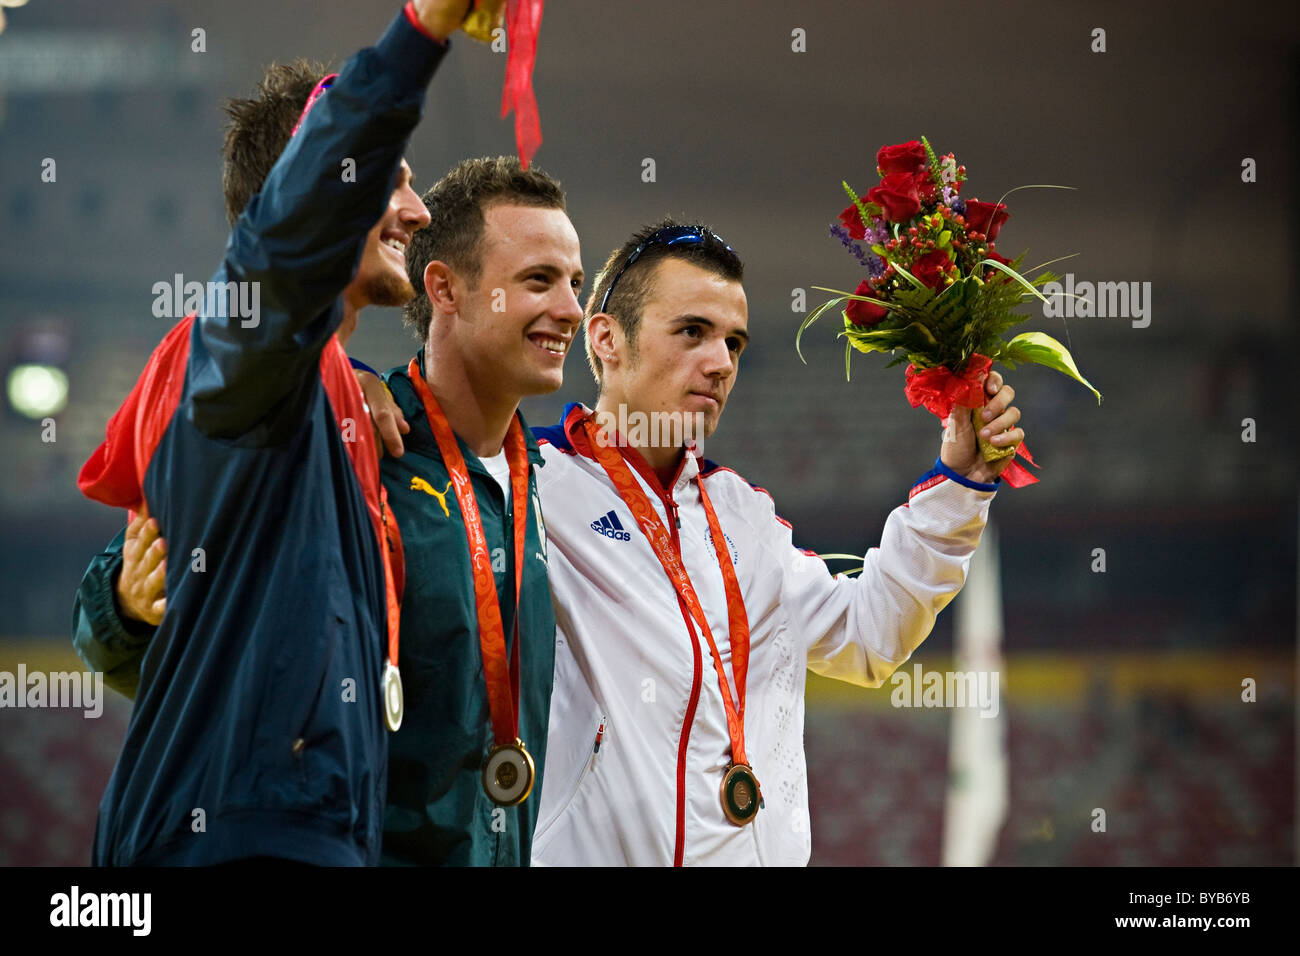 Jim-Bob Bizzell, Oscar Pistorius and Ian Jones pose for a group shot with their medals for the men's T44 400m - Stock Image